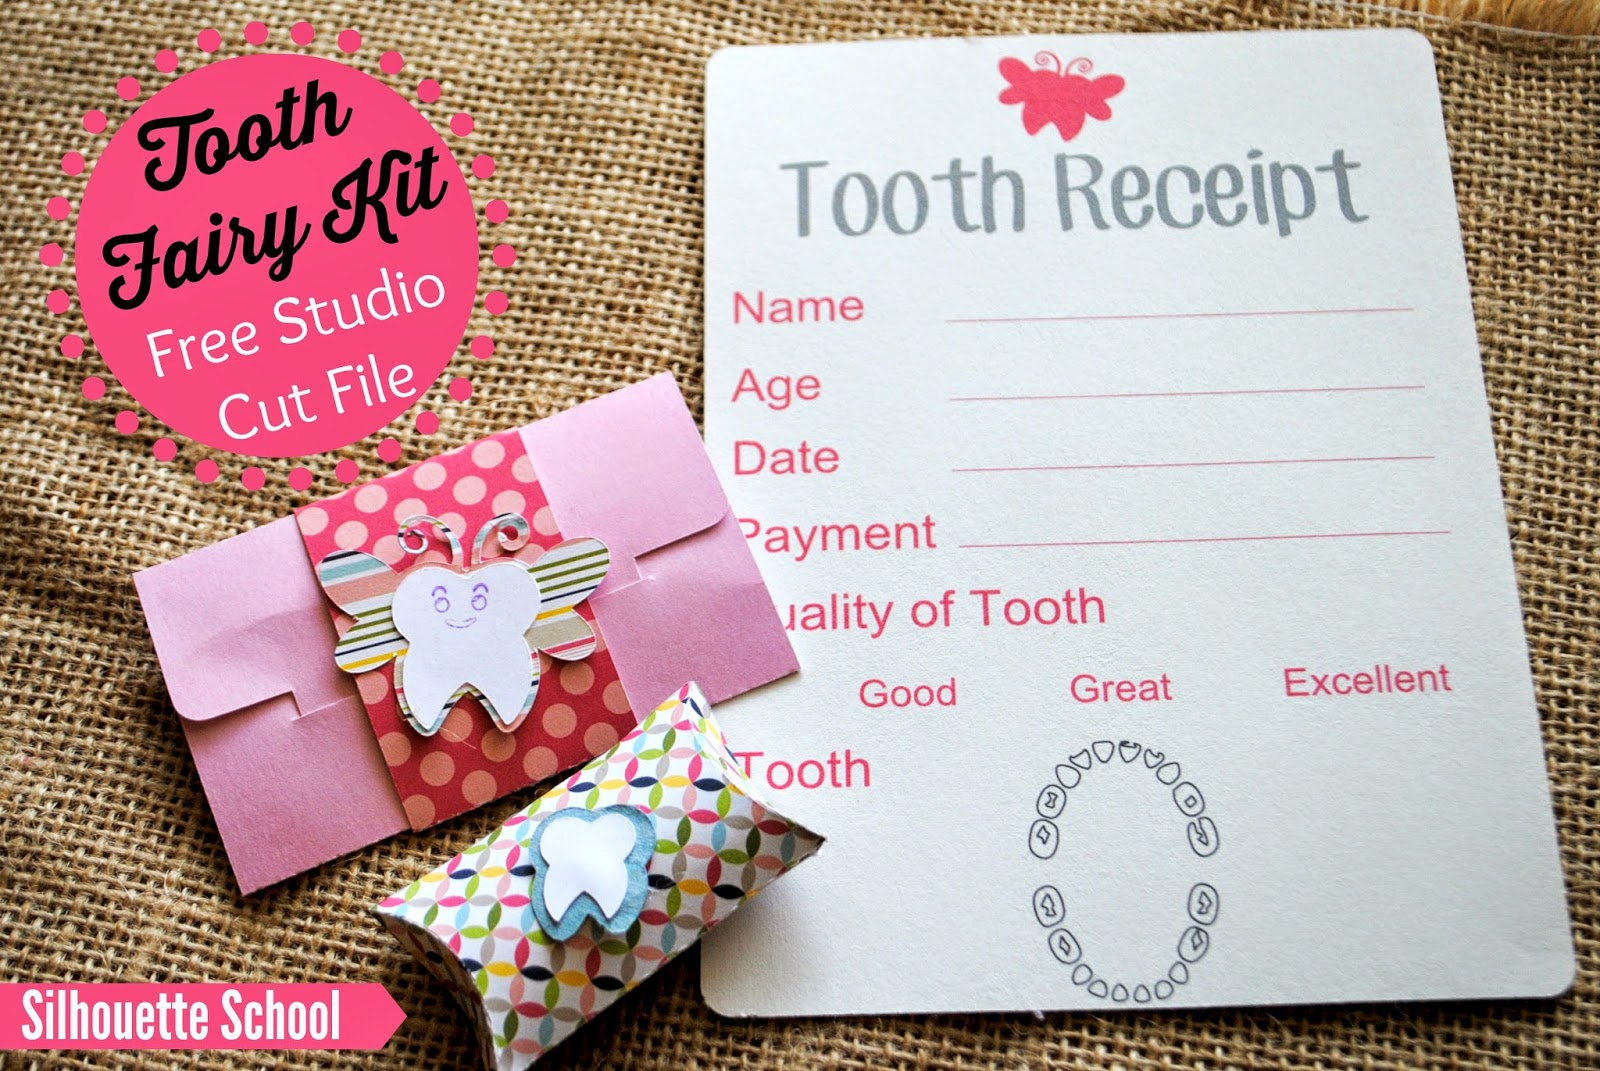 Tooth fairy kit, DIY, do it yourself, free, Silhouette Studio cut file